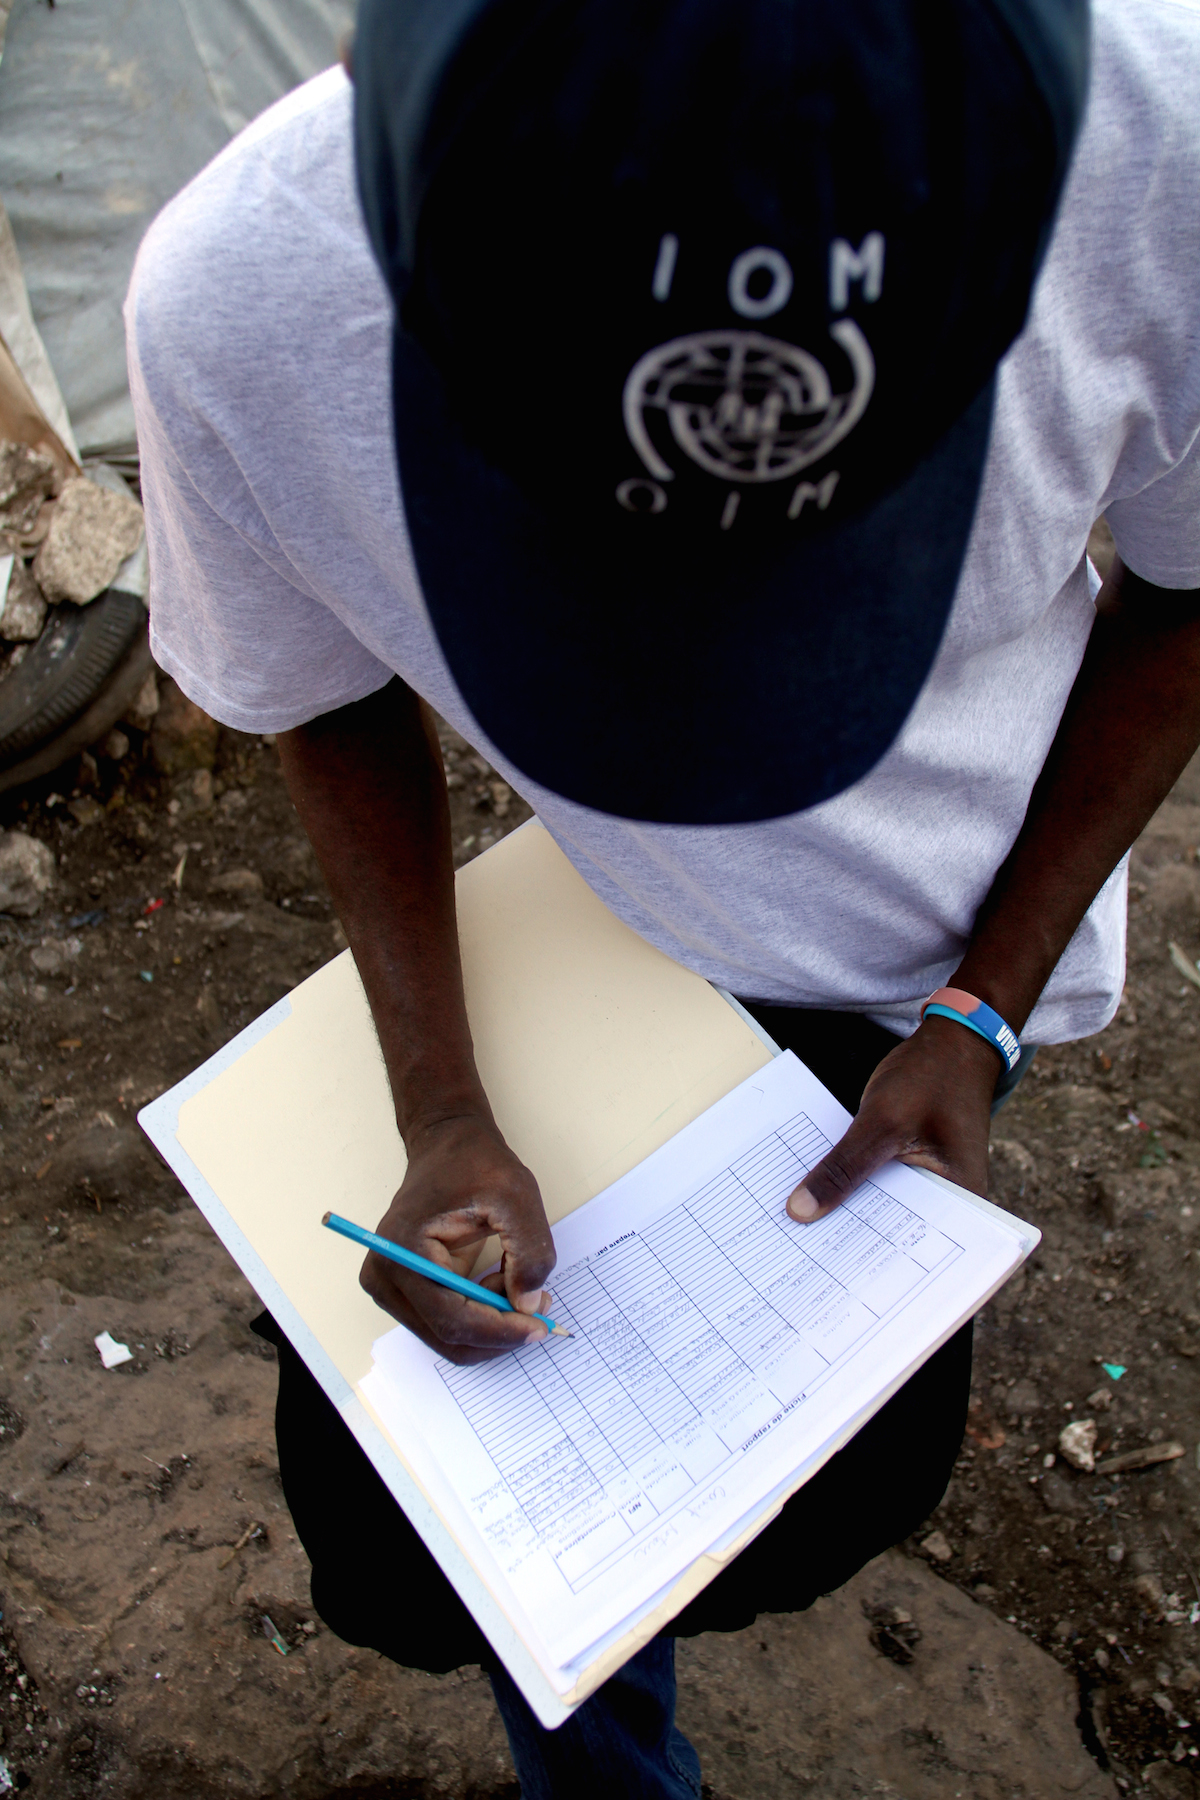 An IOM staff member takes notes while making rounds in the Acra 2 camp.